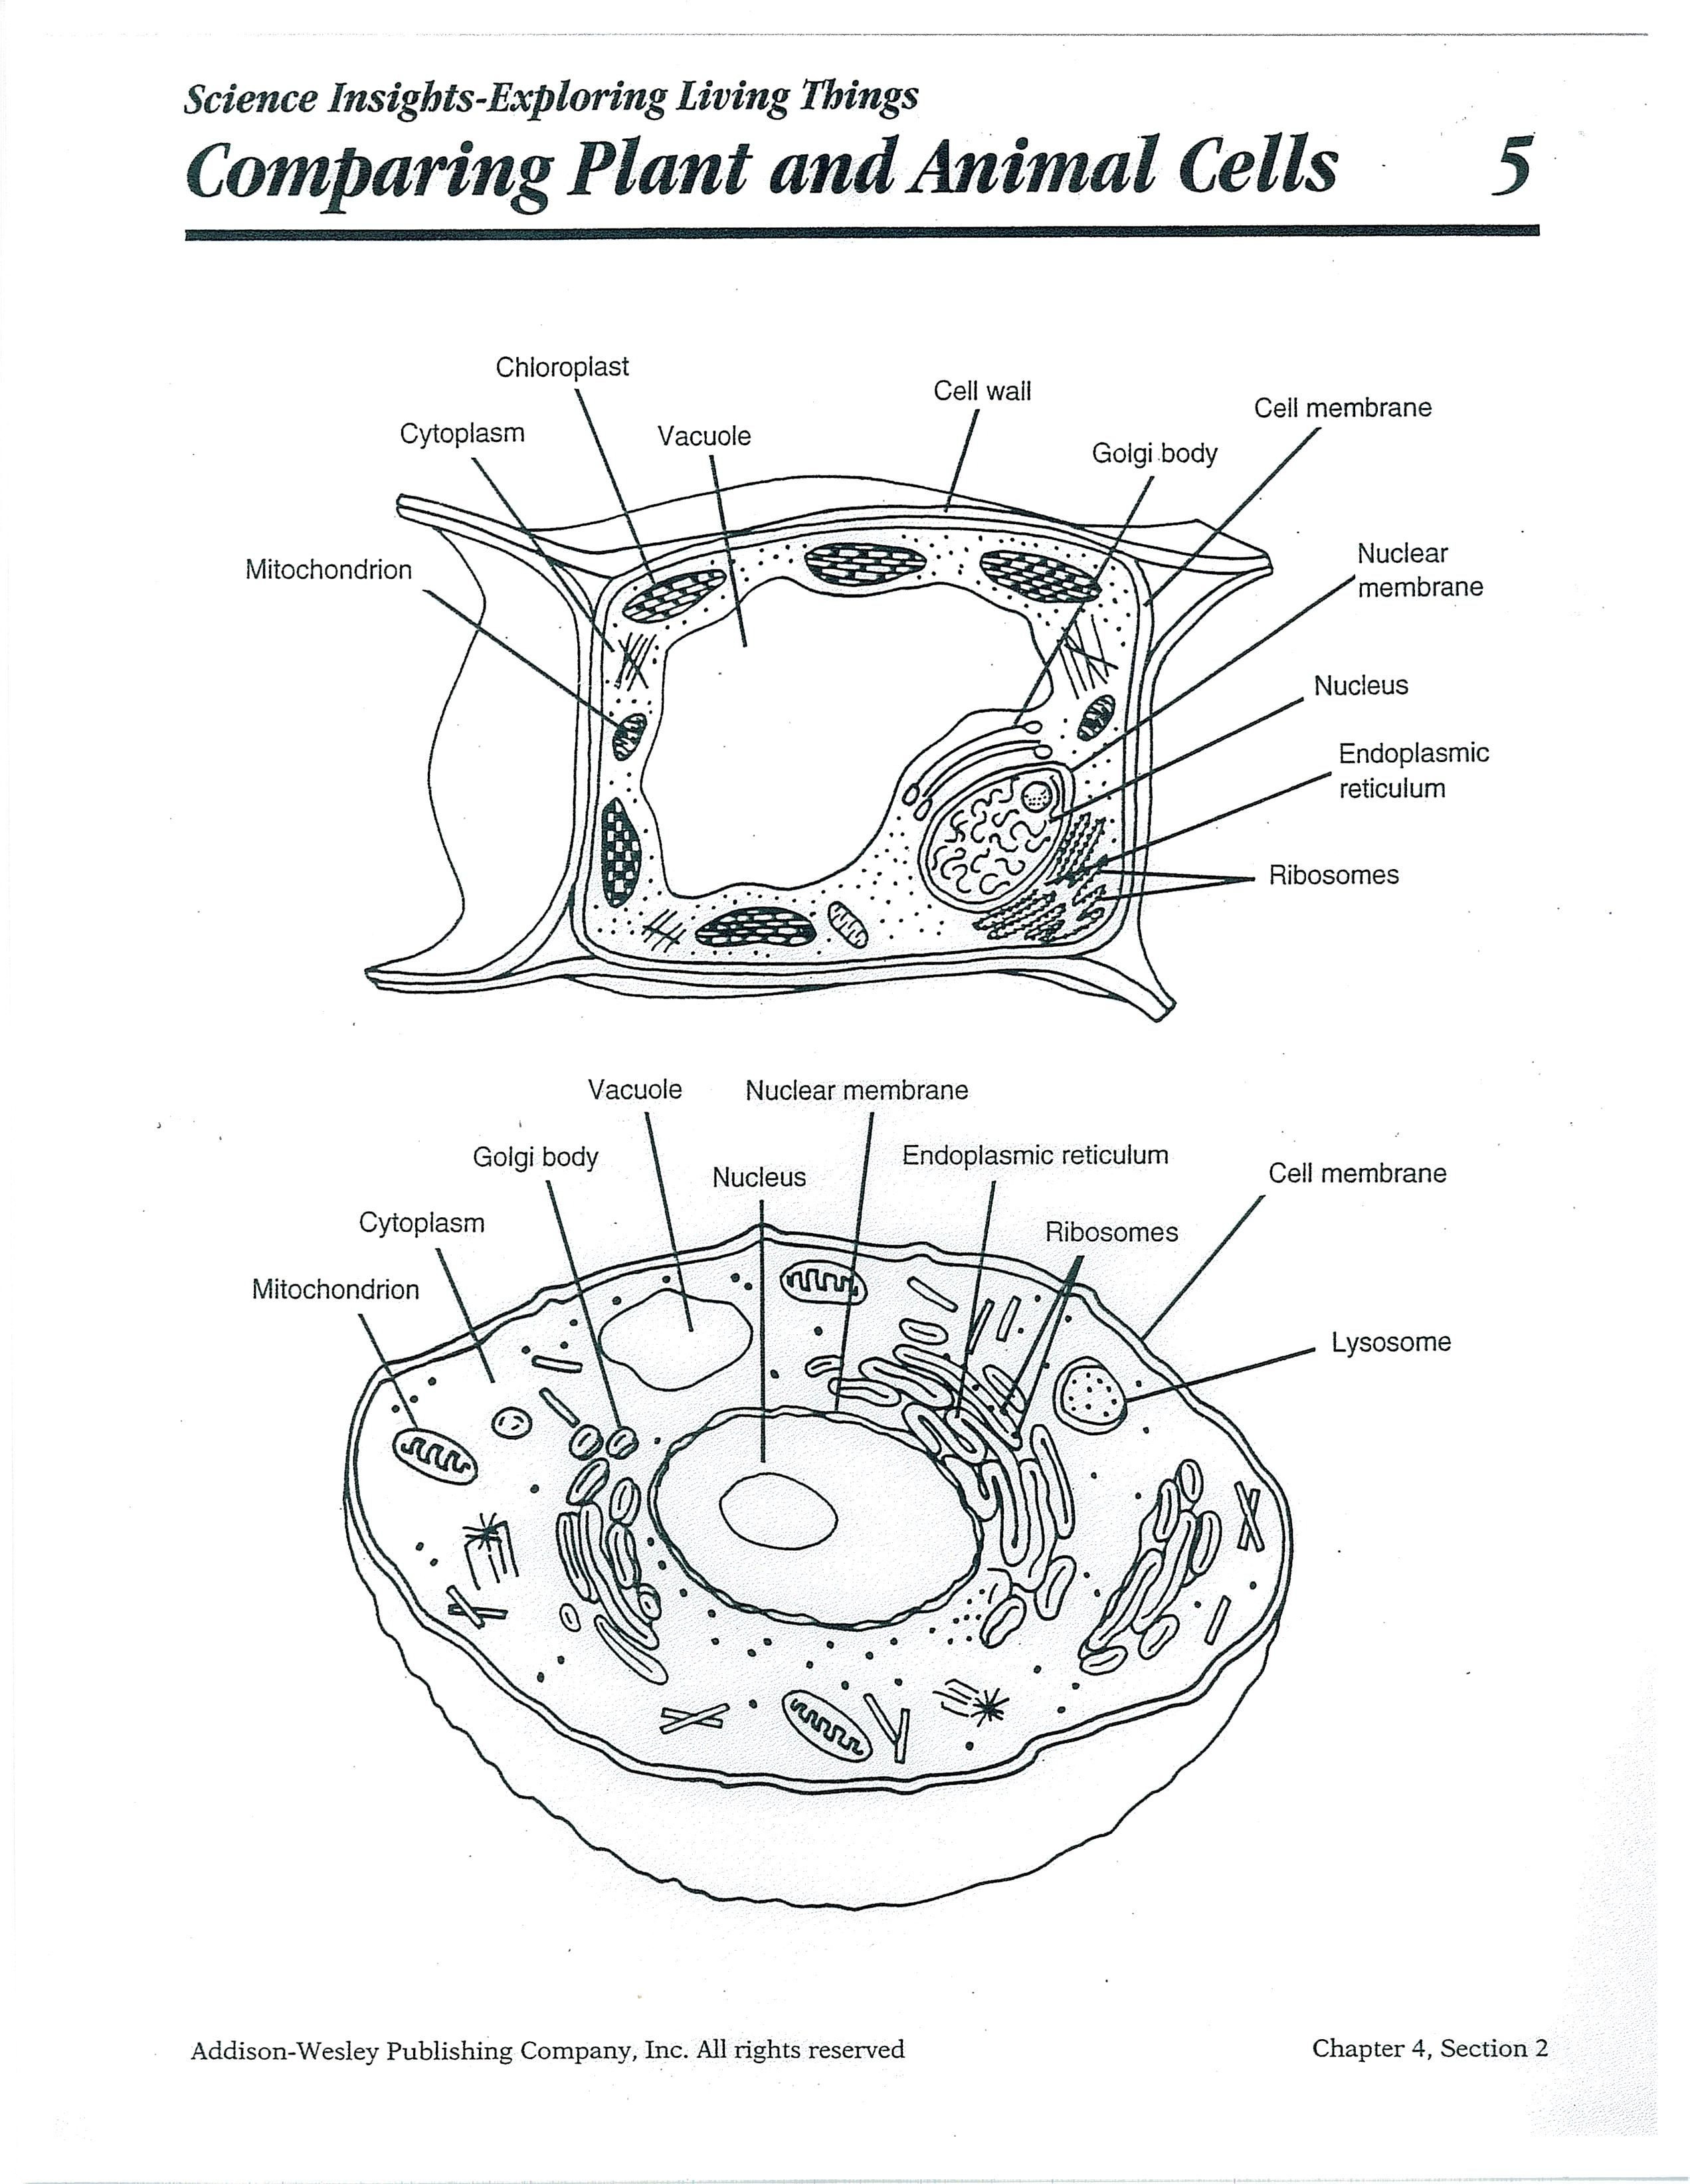 animal cell blank diagram to fill in 2002 chevrolet silverado radio wiring printable plant and